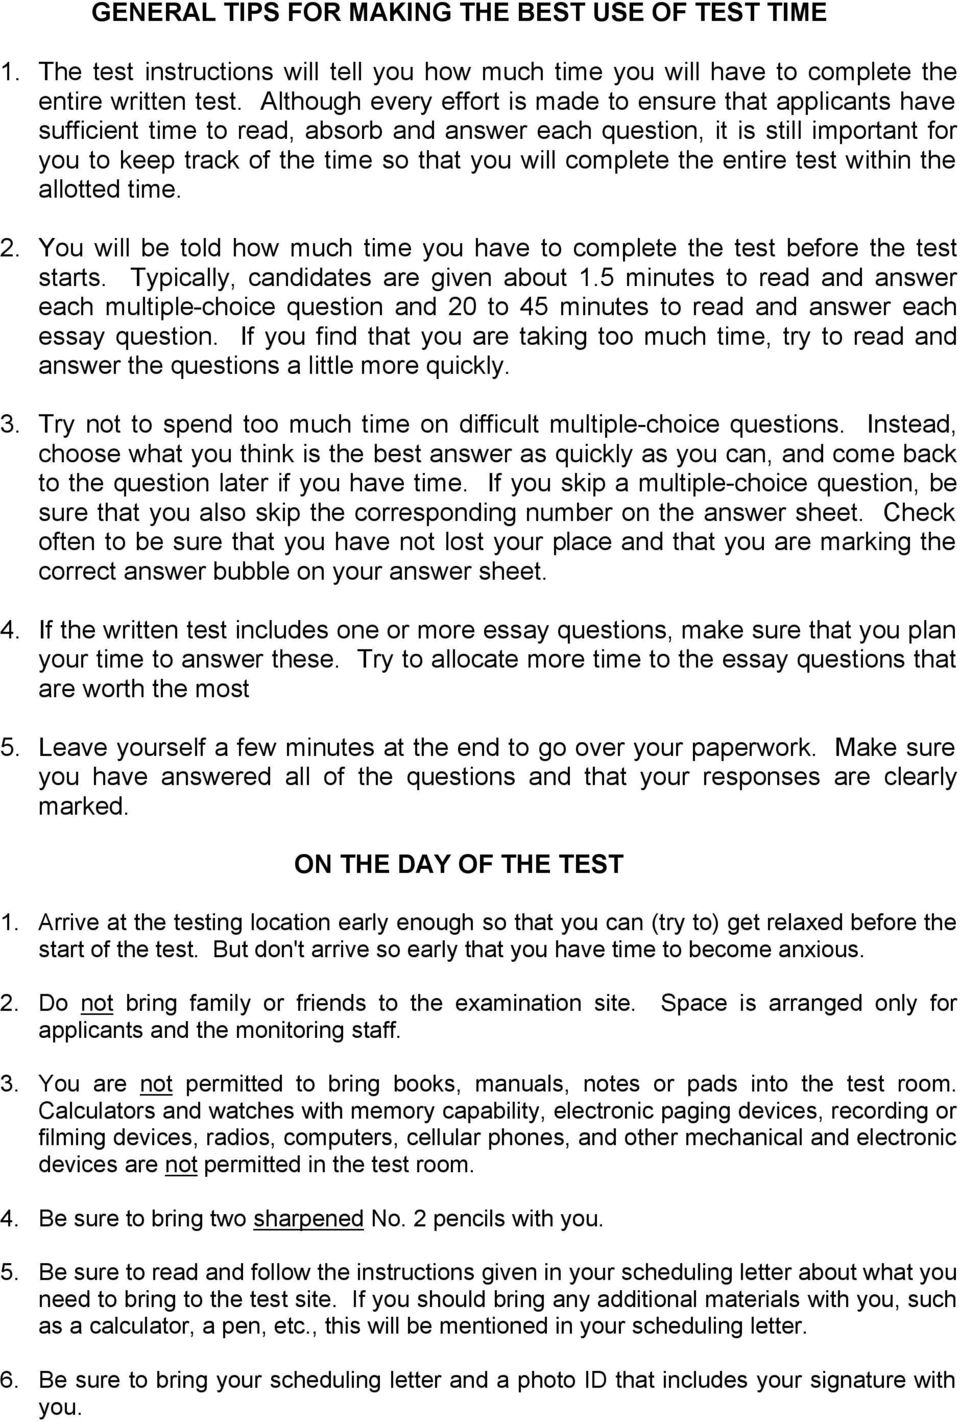 complete the entire test within the allotted time. 2. You will be told how much time you have to complete the test before the test starts. Typically, candidates are given about 1.